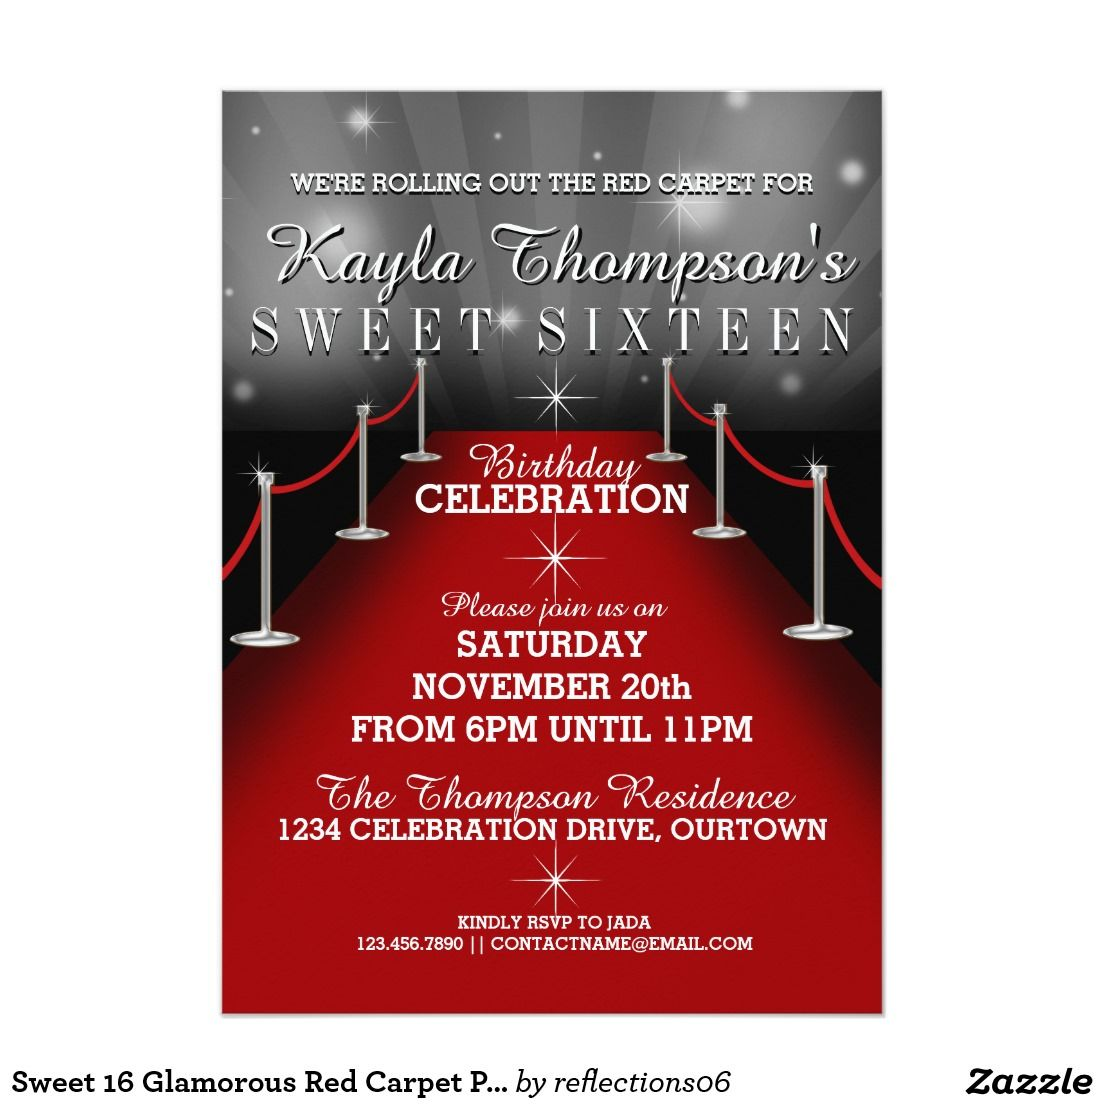 Sweet 16 Glamorous Red Carpet Party Invitations | Pinterest | Sweet ...